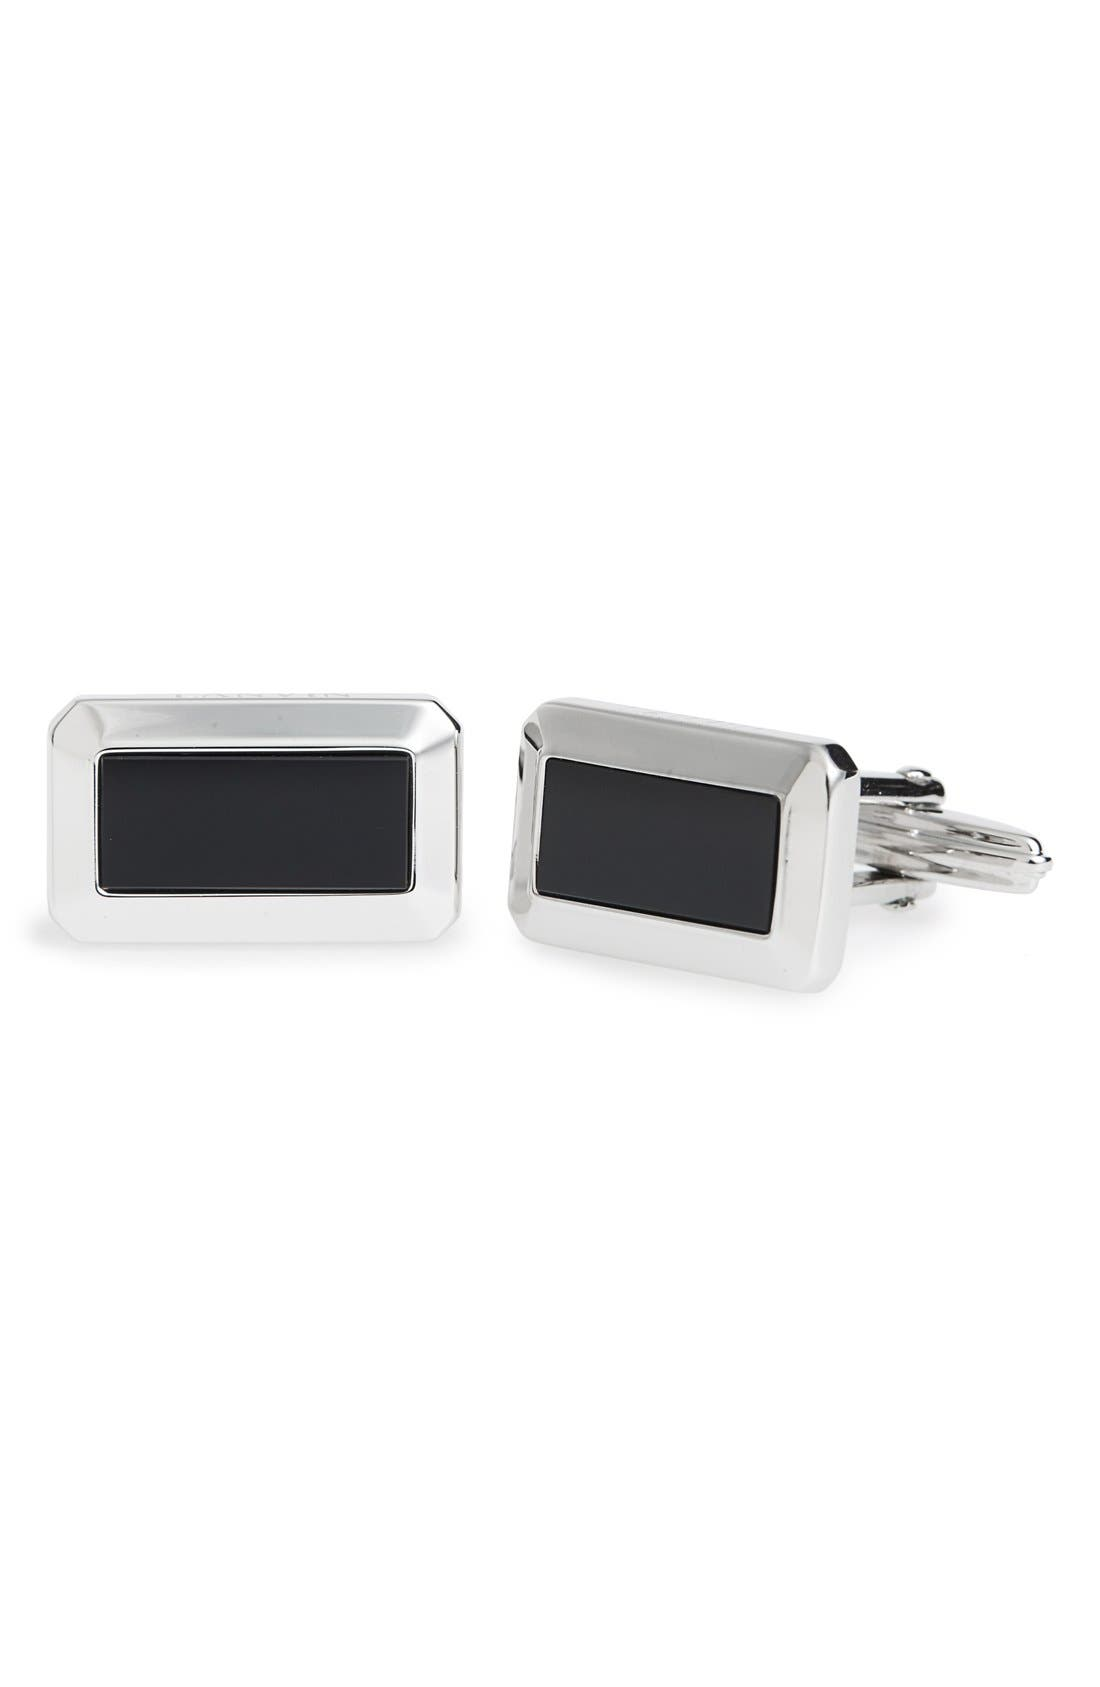 Onyx Inset Rectangular Cuff Links,                         Main,                         color, SILVER/ BLACK